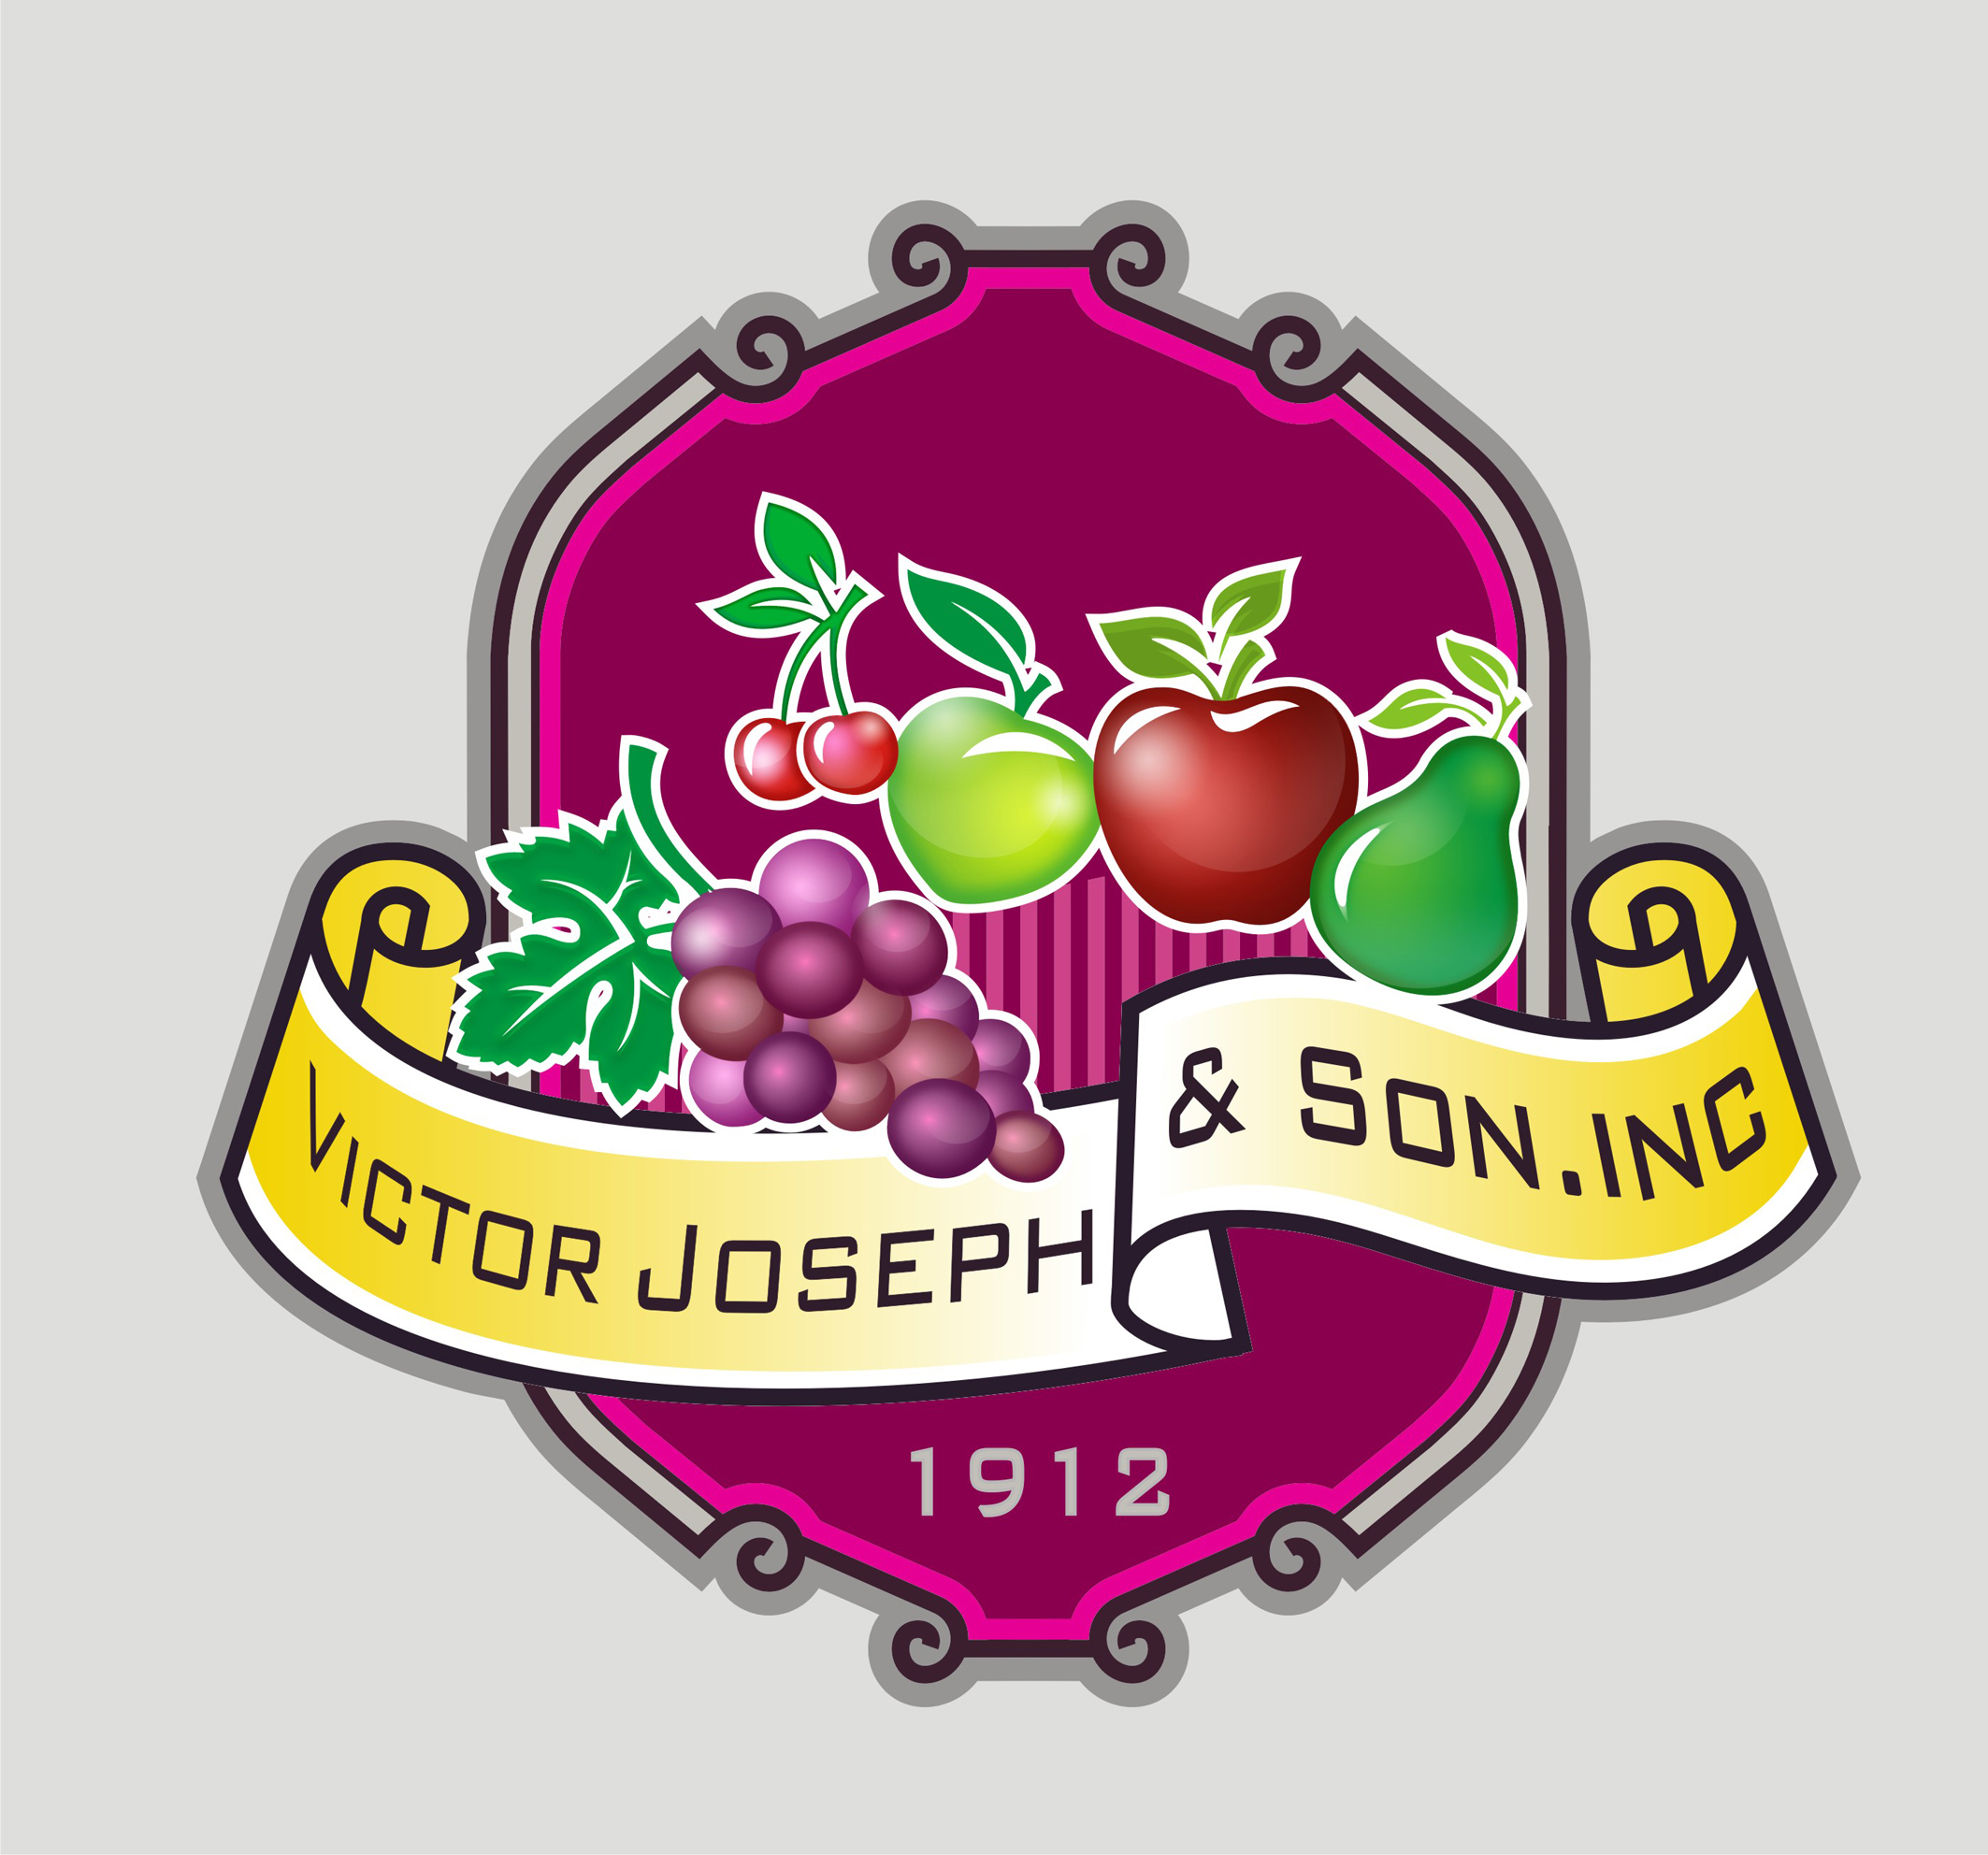 Logo Design by Private User - Entry No. 204 in the Logo Design Contest Imaginative Logo Design for Victor Joseph & Son, Inc..